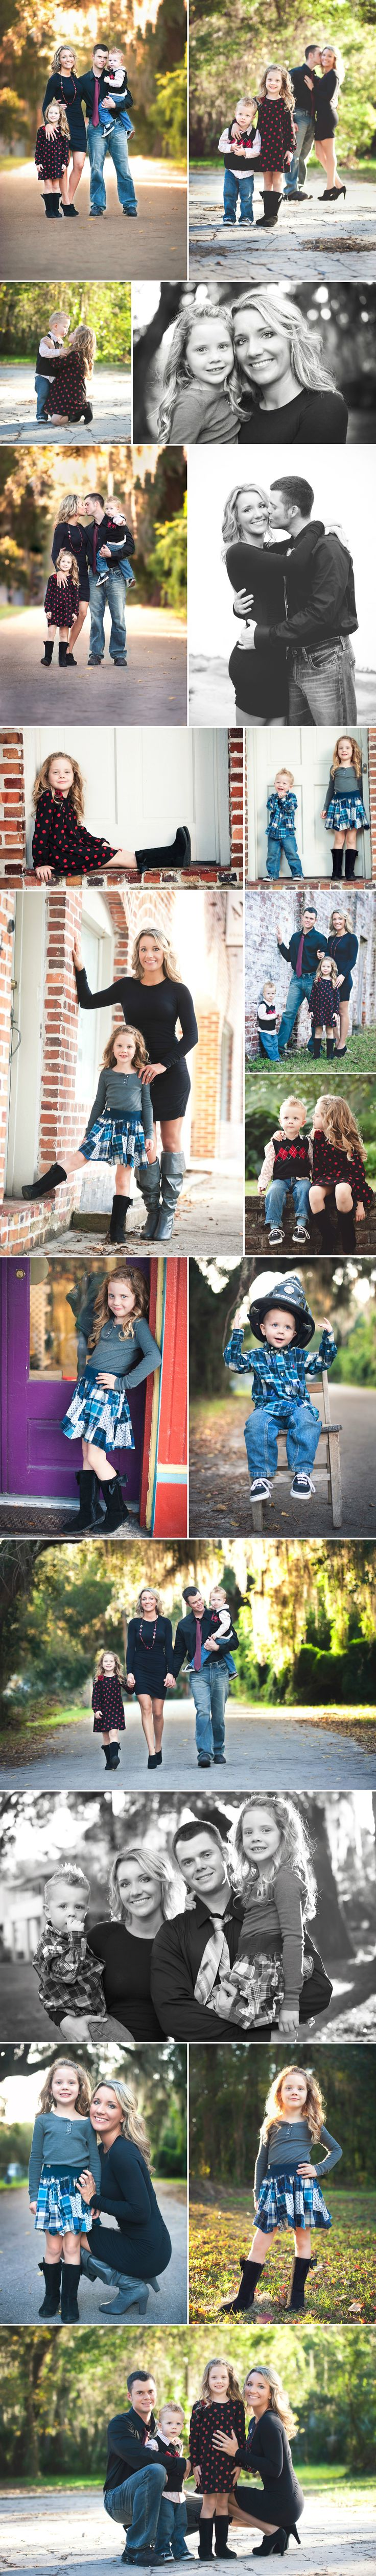 Gainesville, FL Family Photographer   Micanopy J Family Session   Manic Mother Photography